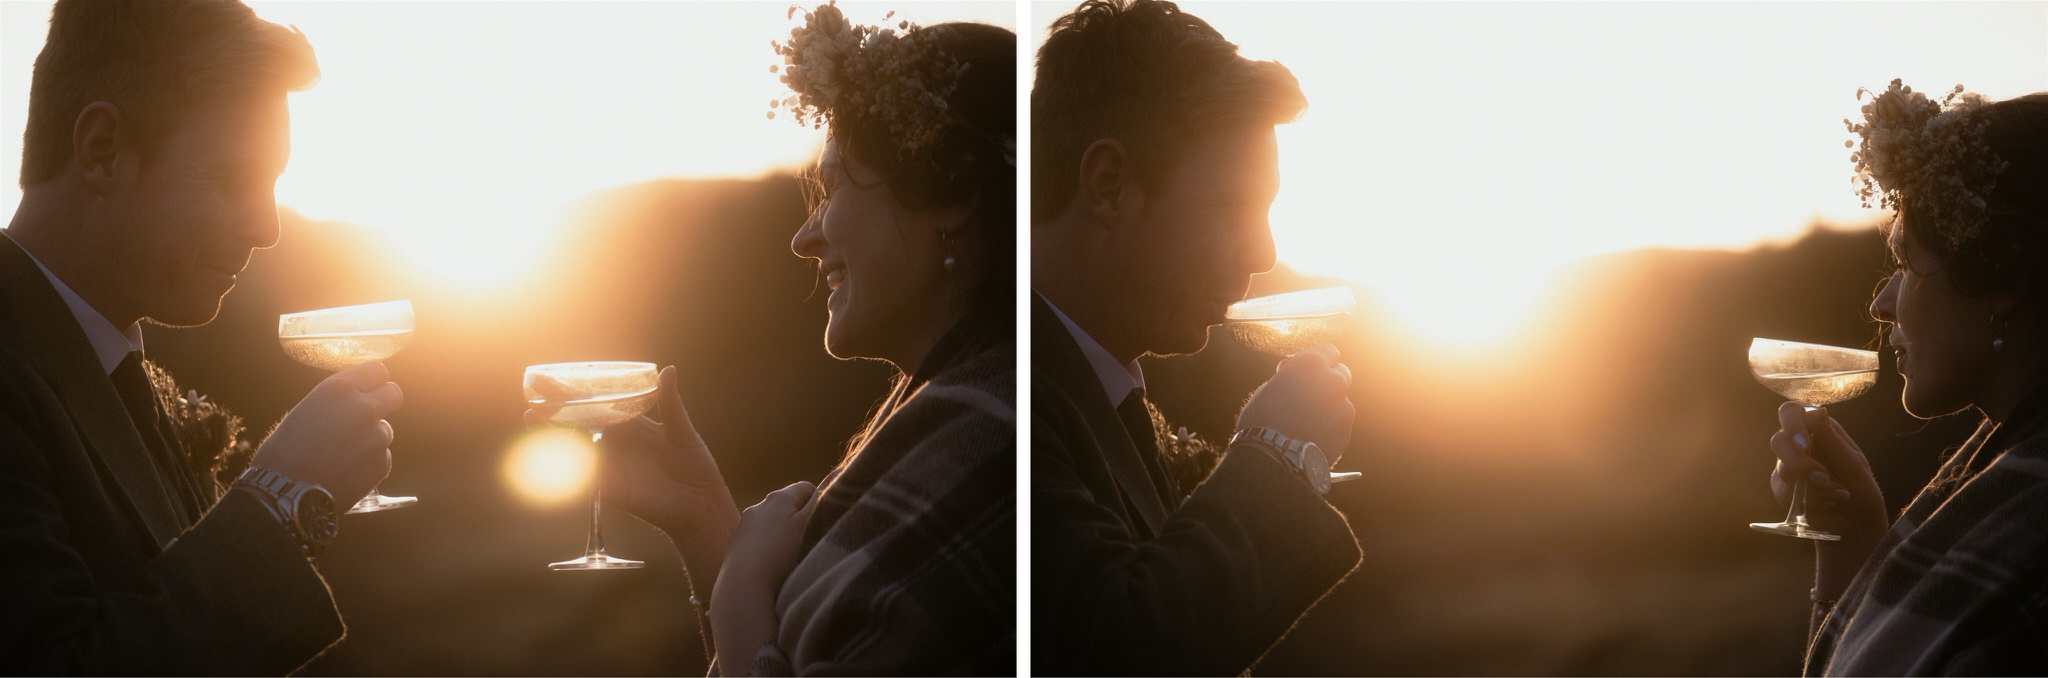 Bride and groom drink Champagne at sunset during their Scotland elopement wedding